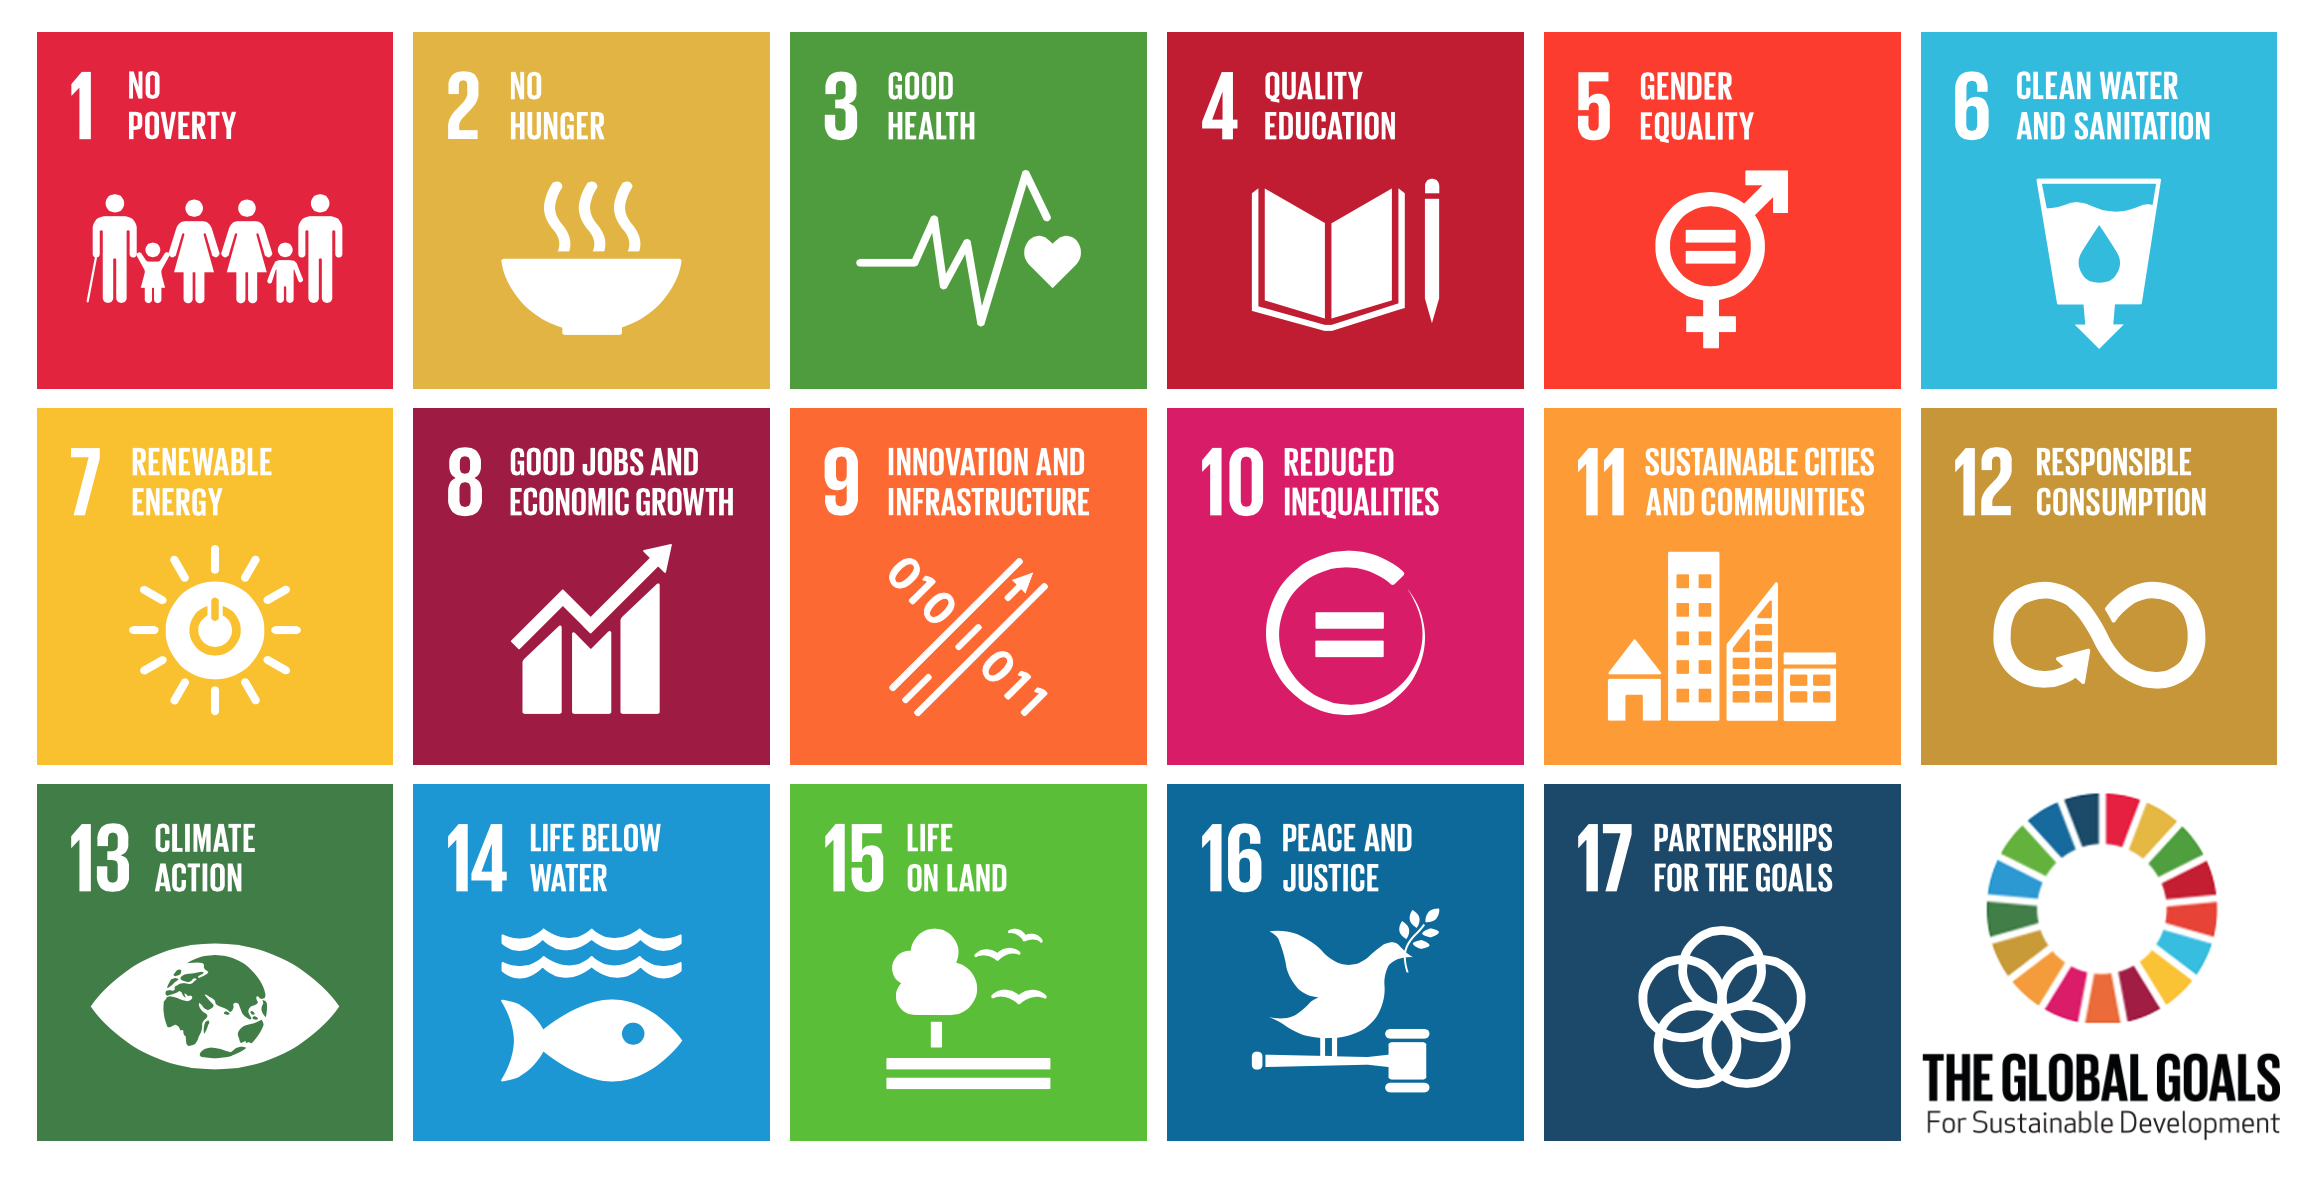 SDG chart image.png